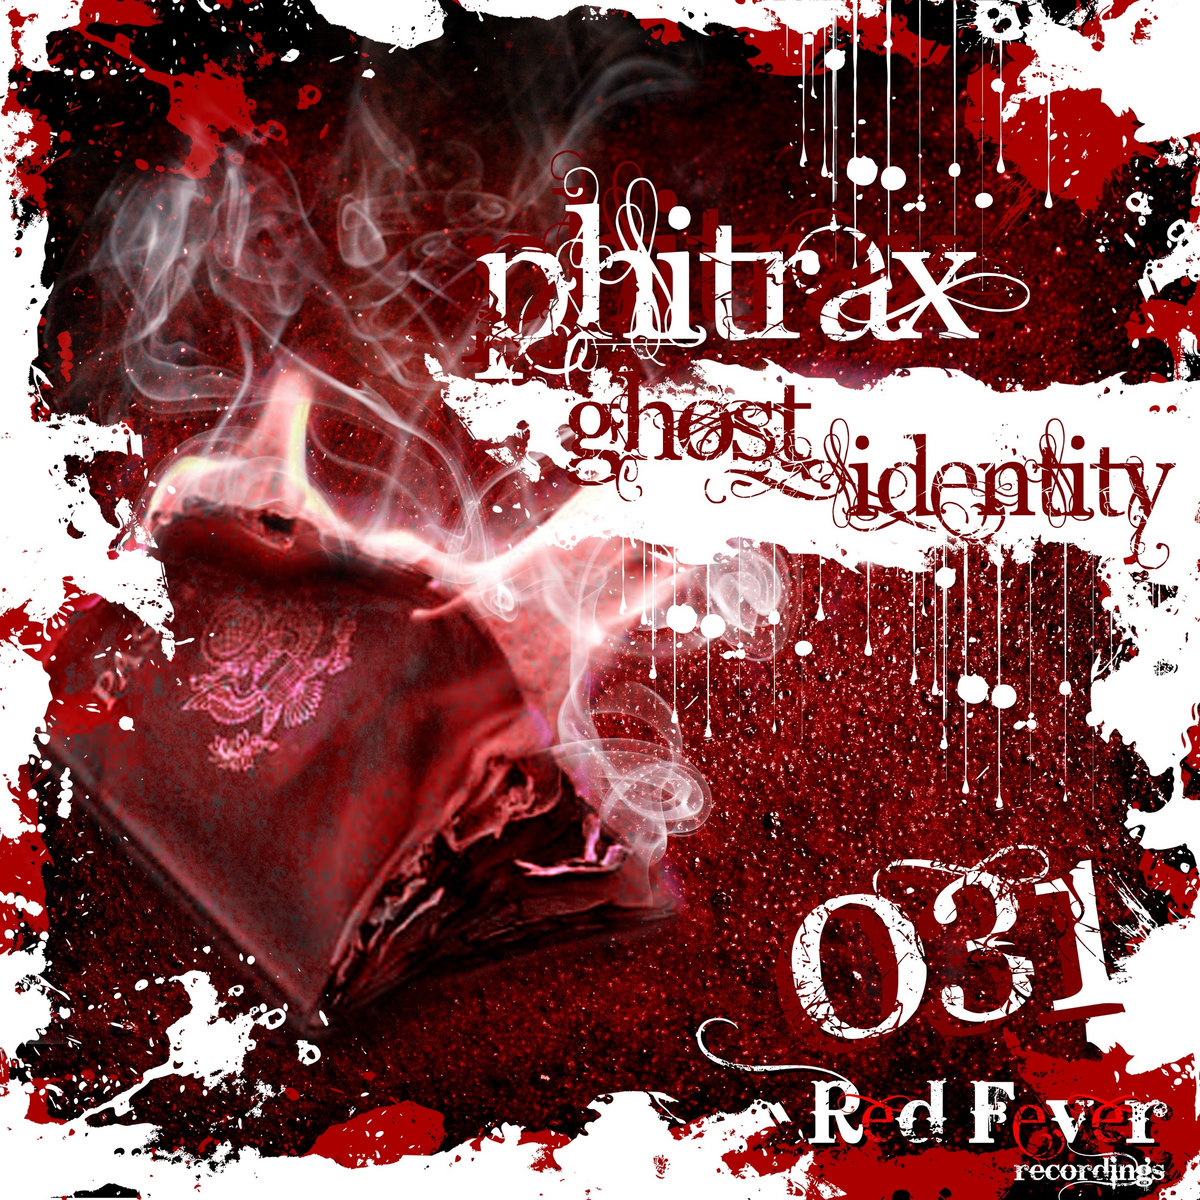 Phitrax - The Secret Of A Killer @ 'Ghost Identity' album (electronic, gabber)